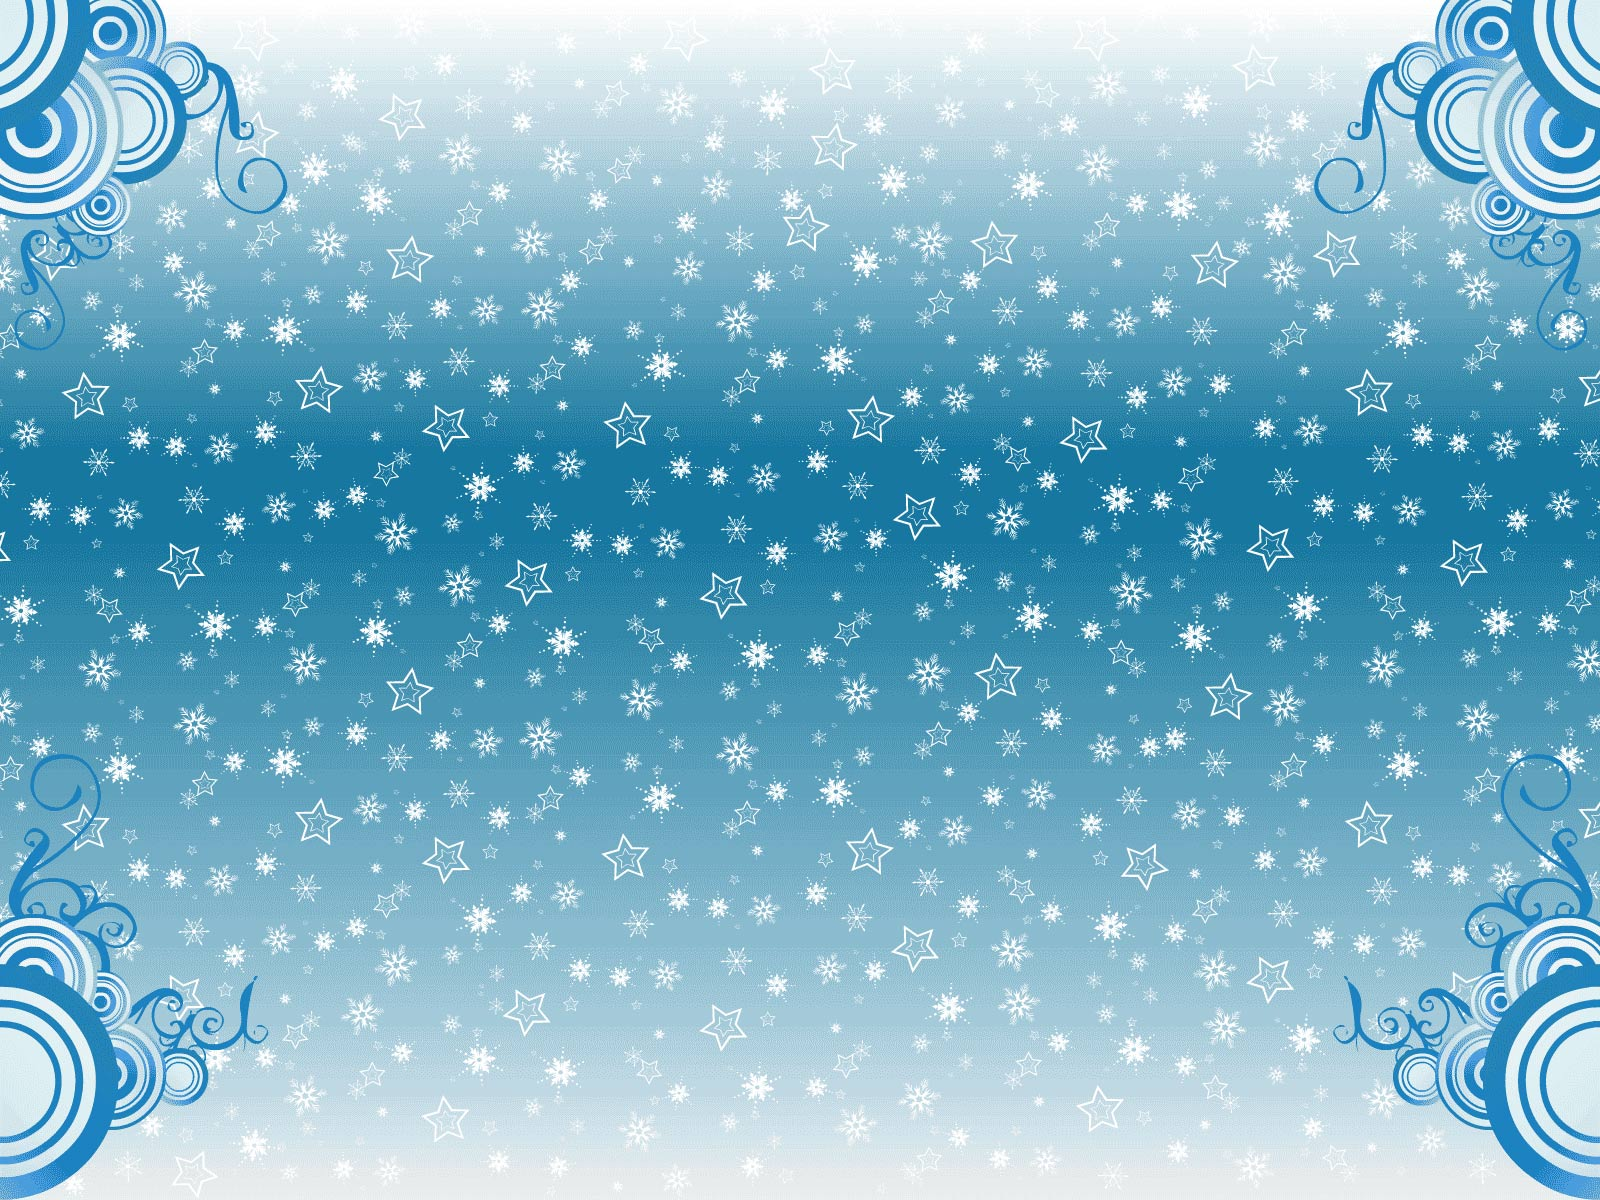 winter Desktop Wallpaper High Quality Wallpapers Wallpaper Desktop 1600x1200